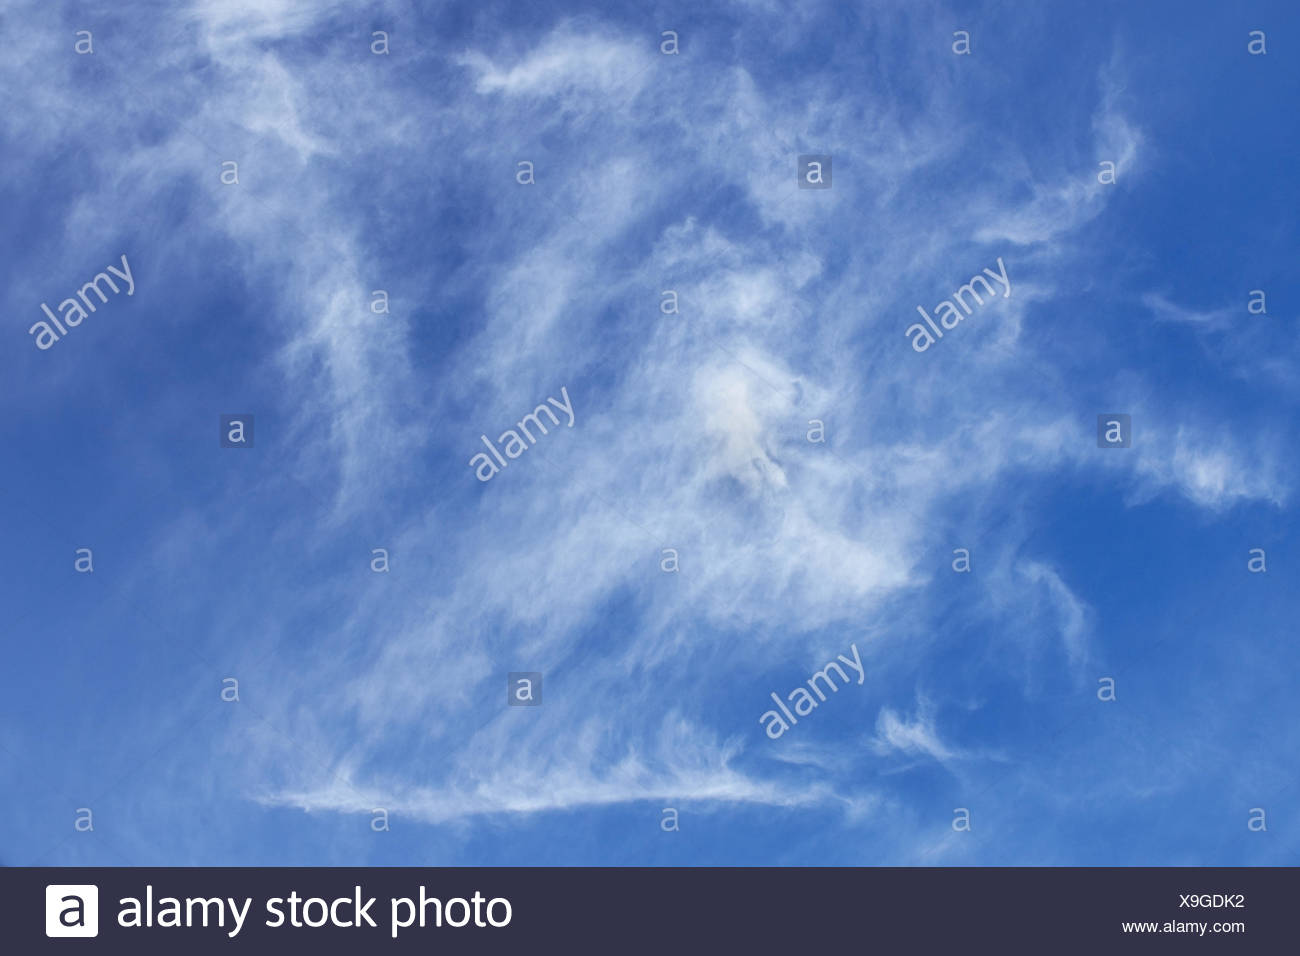 Abstract oblong clouds - Stock Image